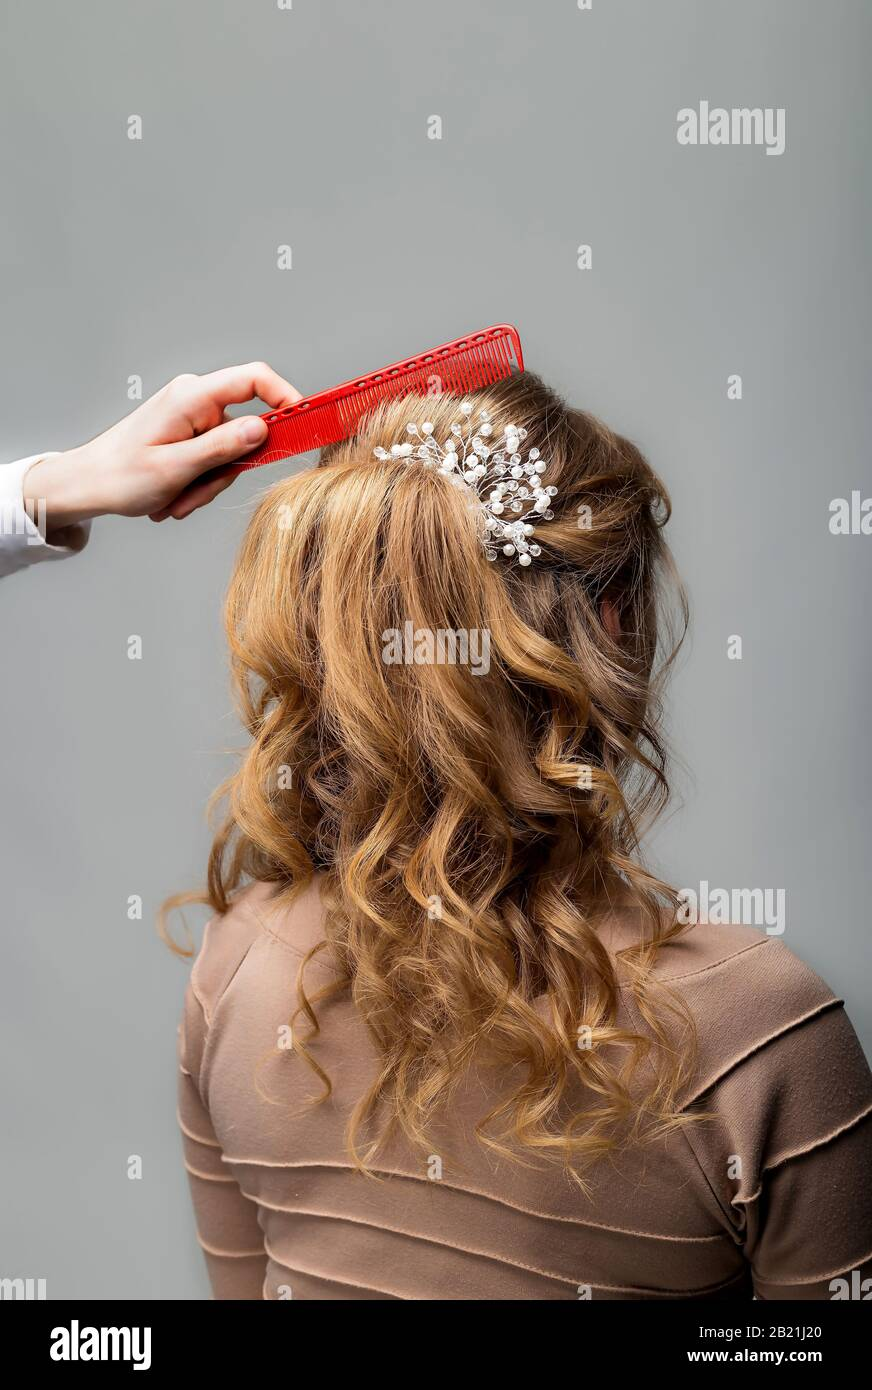 Wave curls hairstyle. Hairdresser making hairstyle to blond hair woman with long hair using comb on gray background. Professional hairdressing Stock Photo